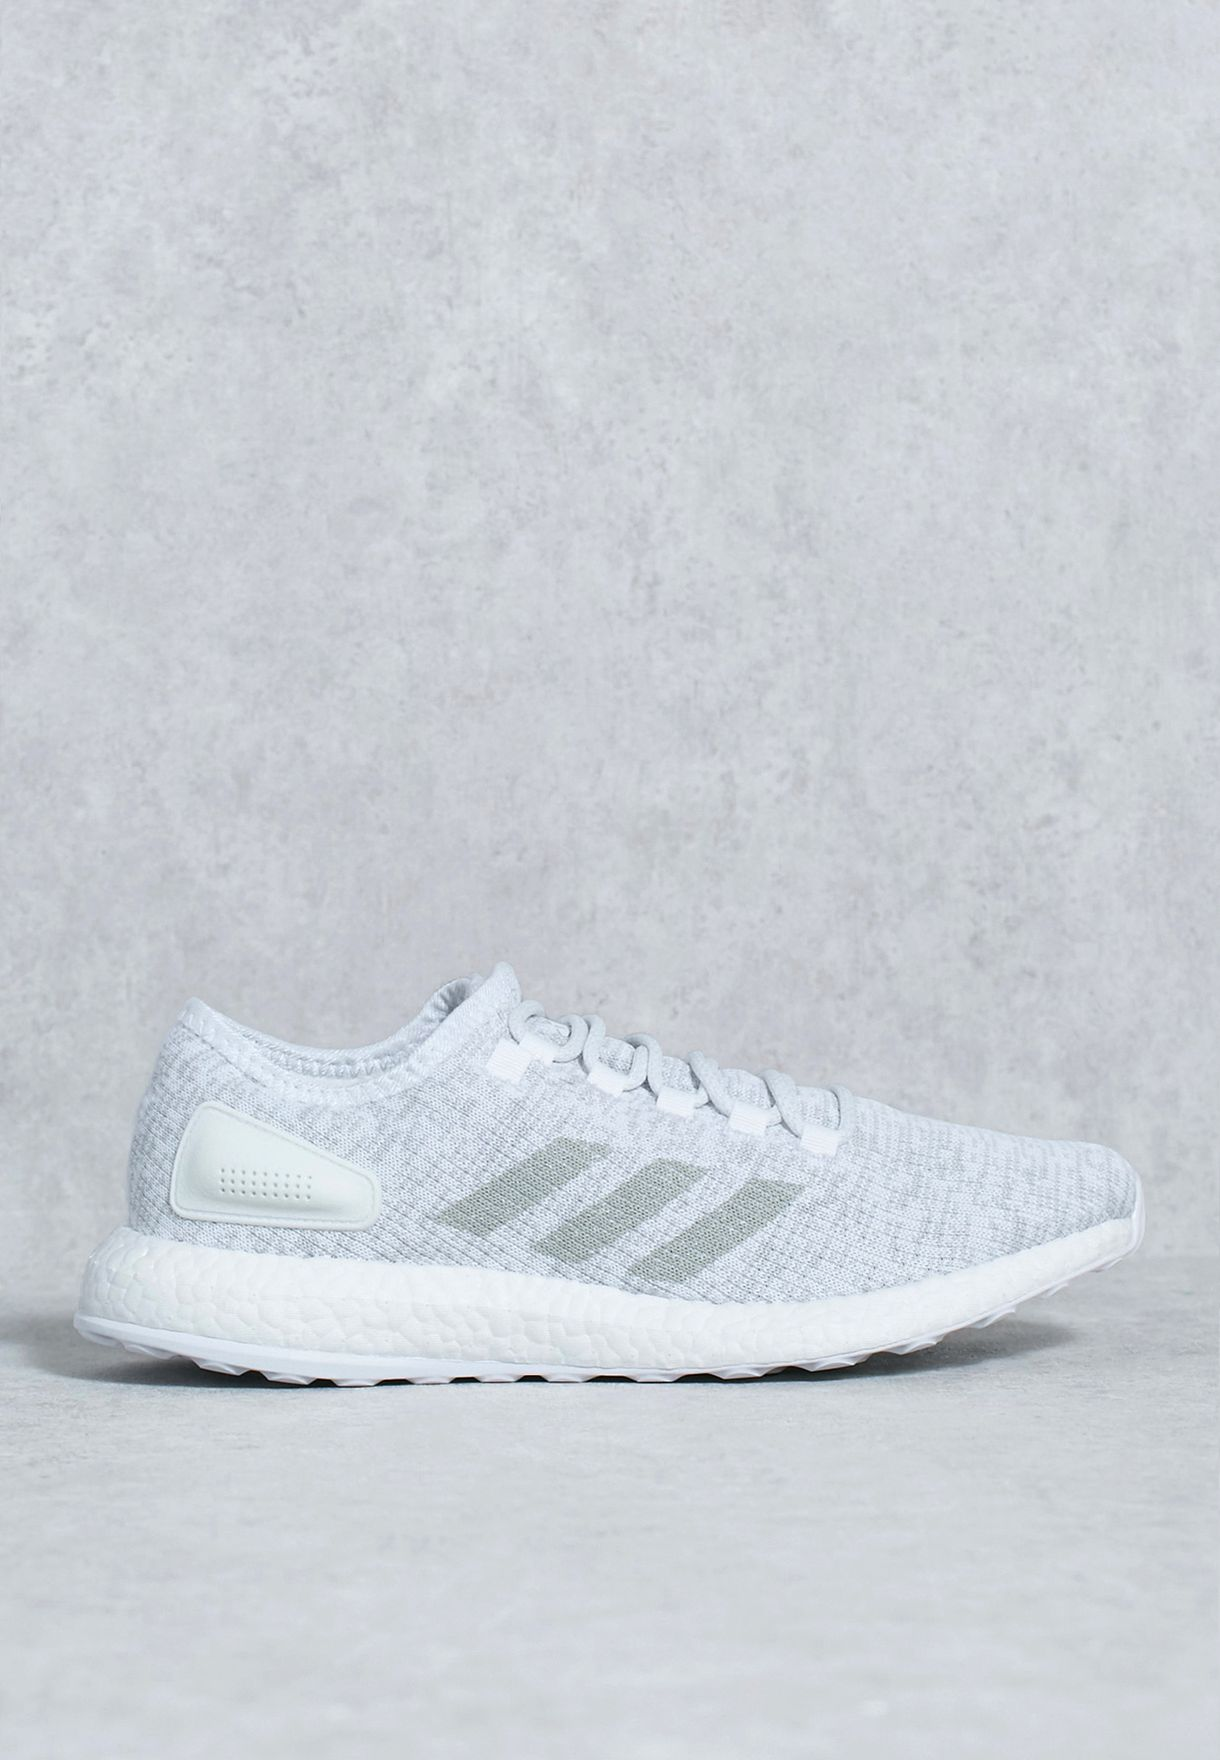 96140a7ff1858 Shop adidas multicolor Pureboost S81991 for Men in Kuwait - AD476SH97HBE